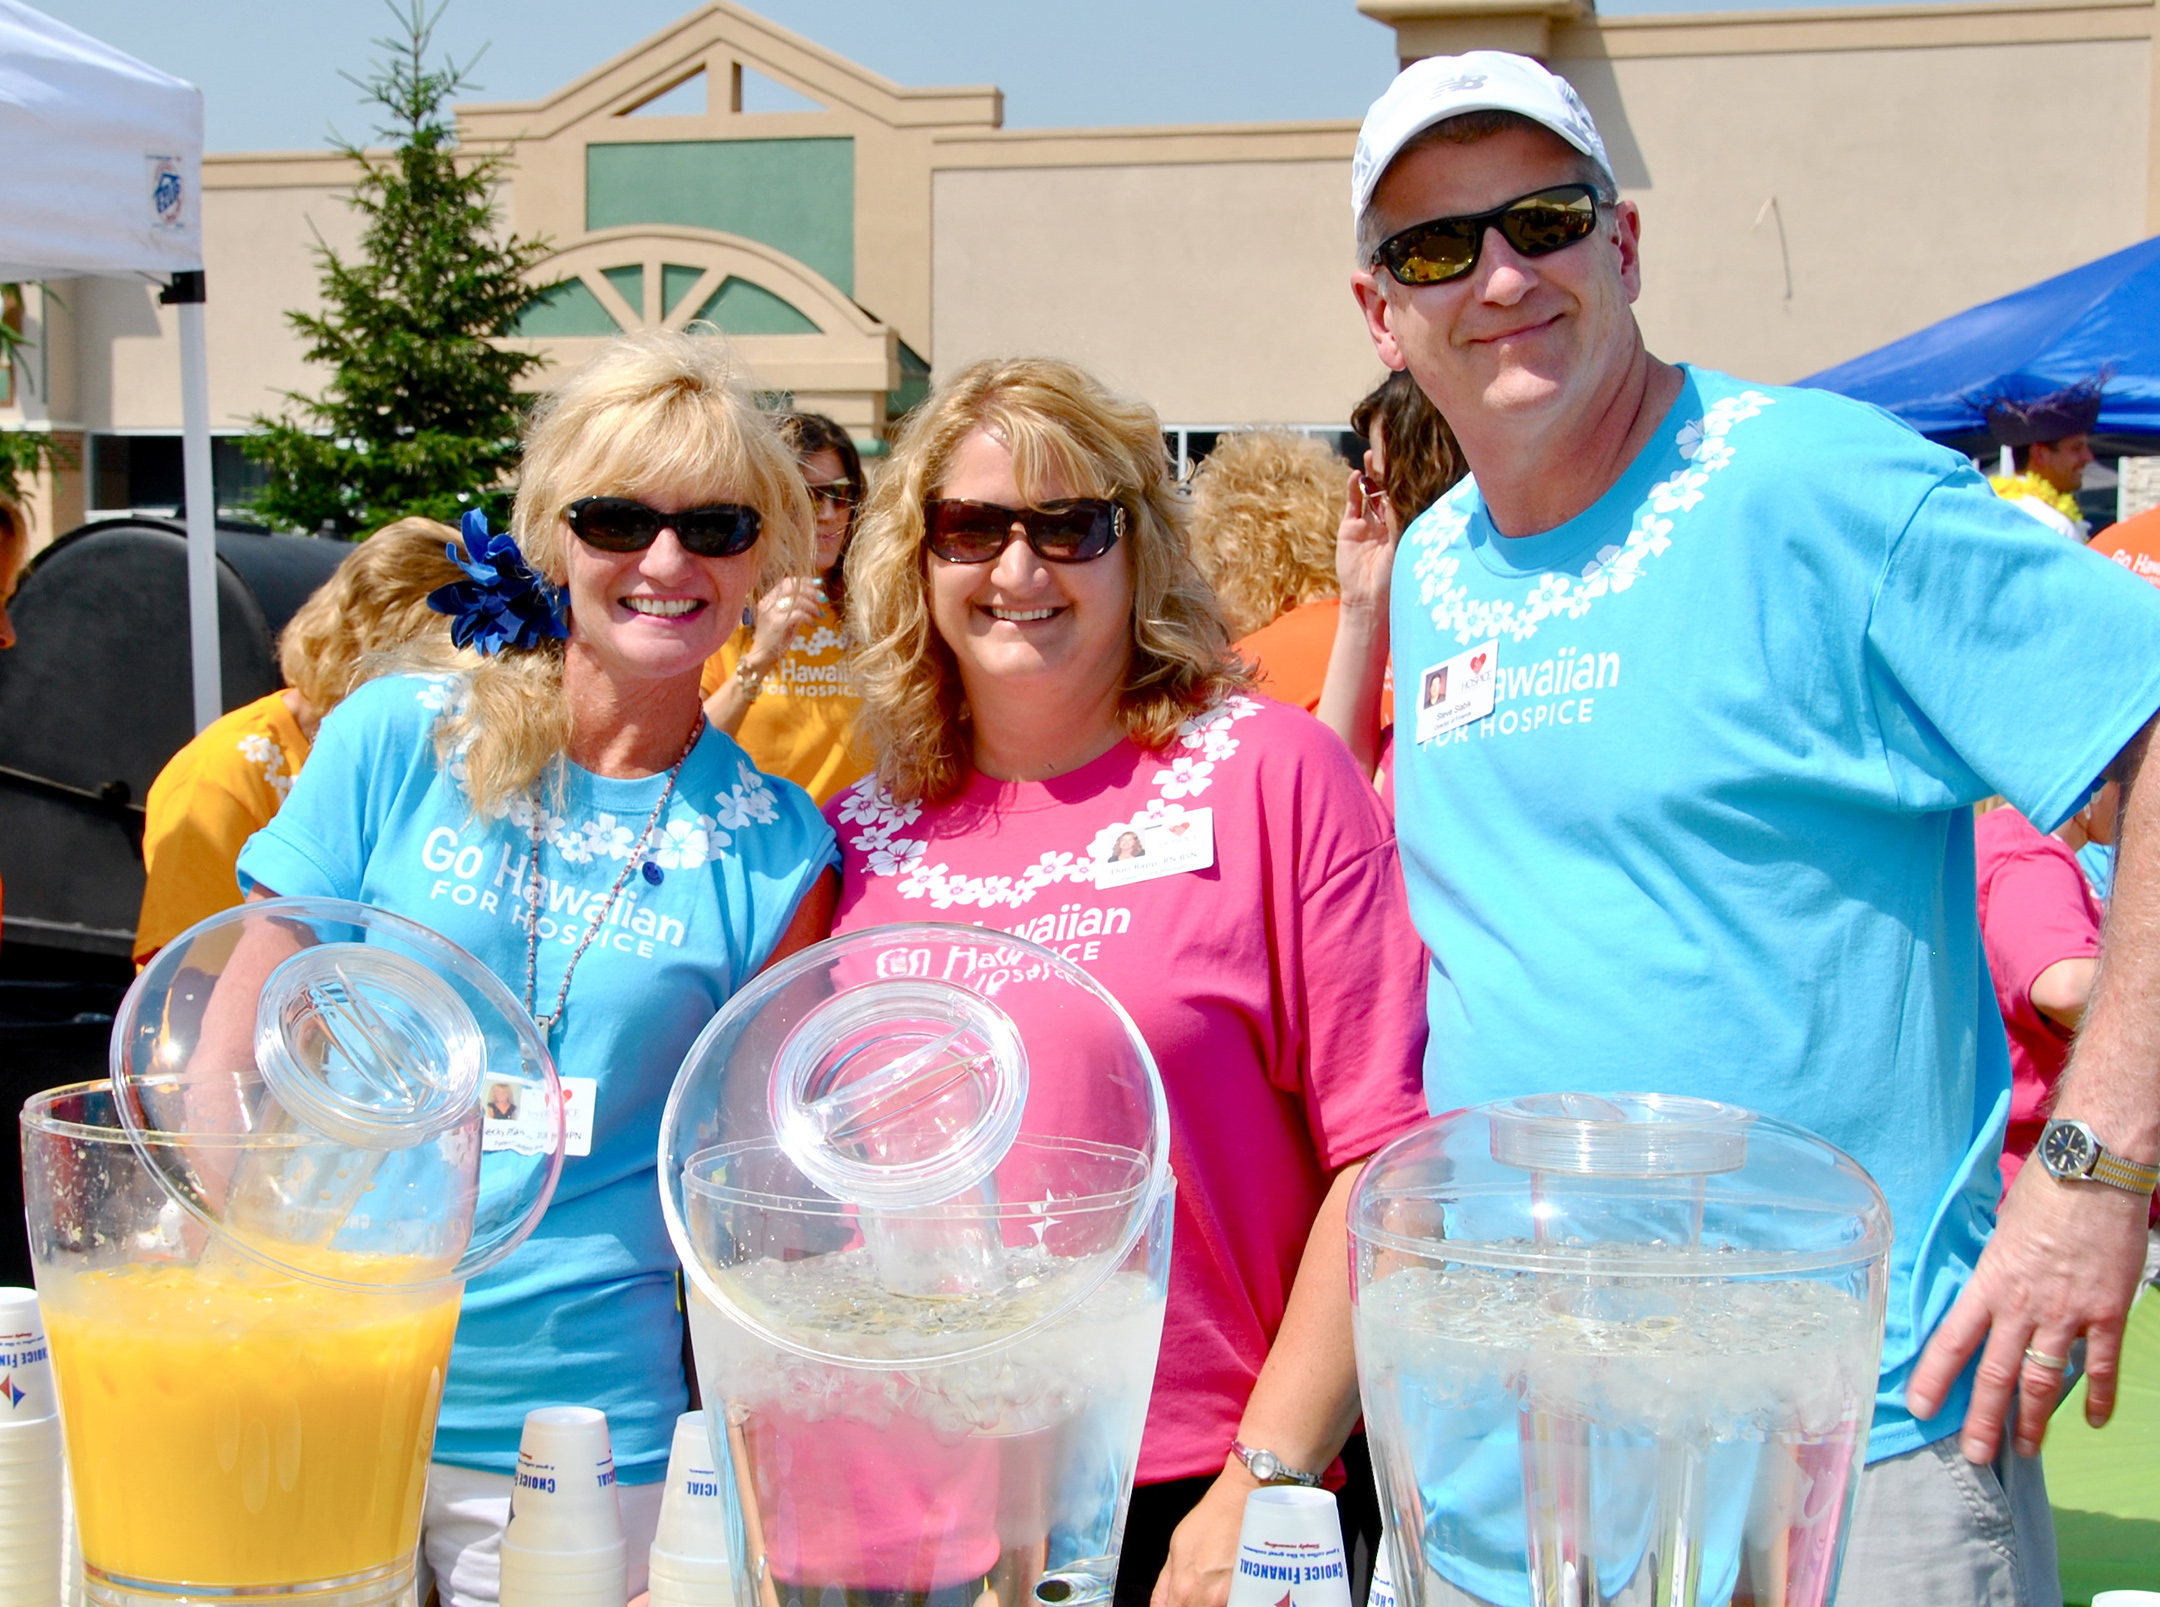 Go Hawaiian for Hospice event volunteers